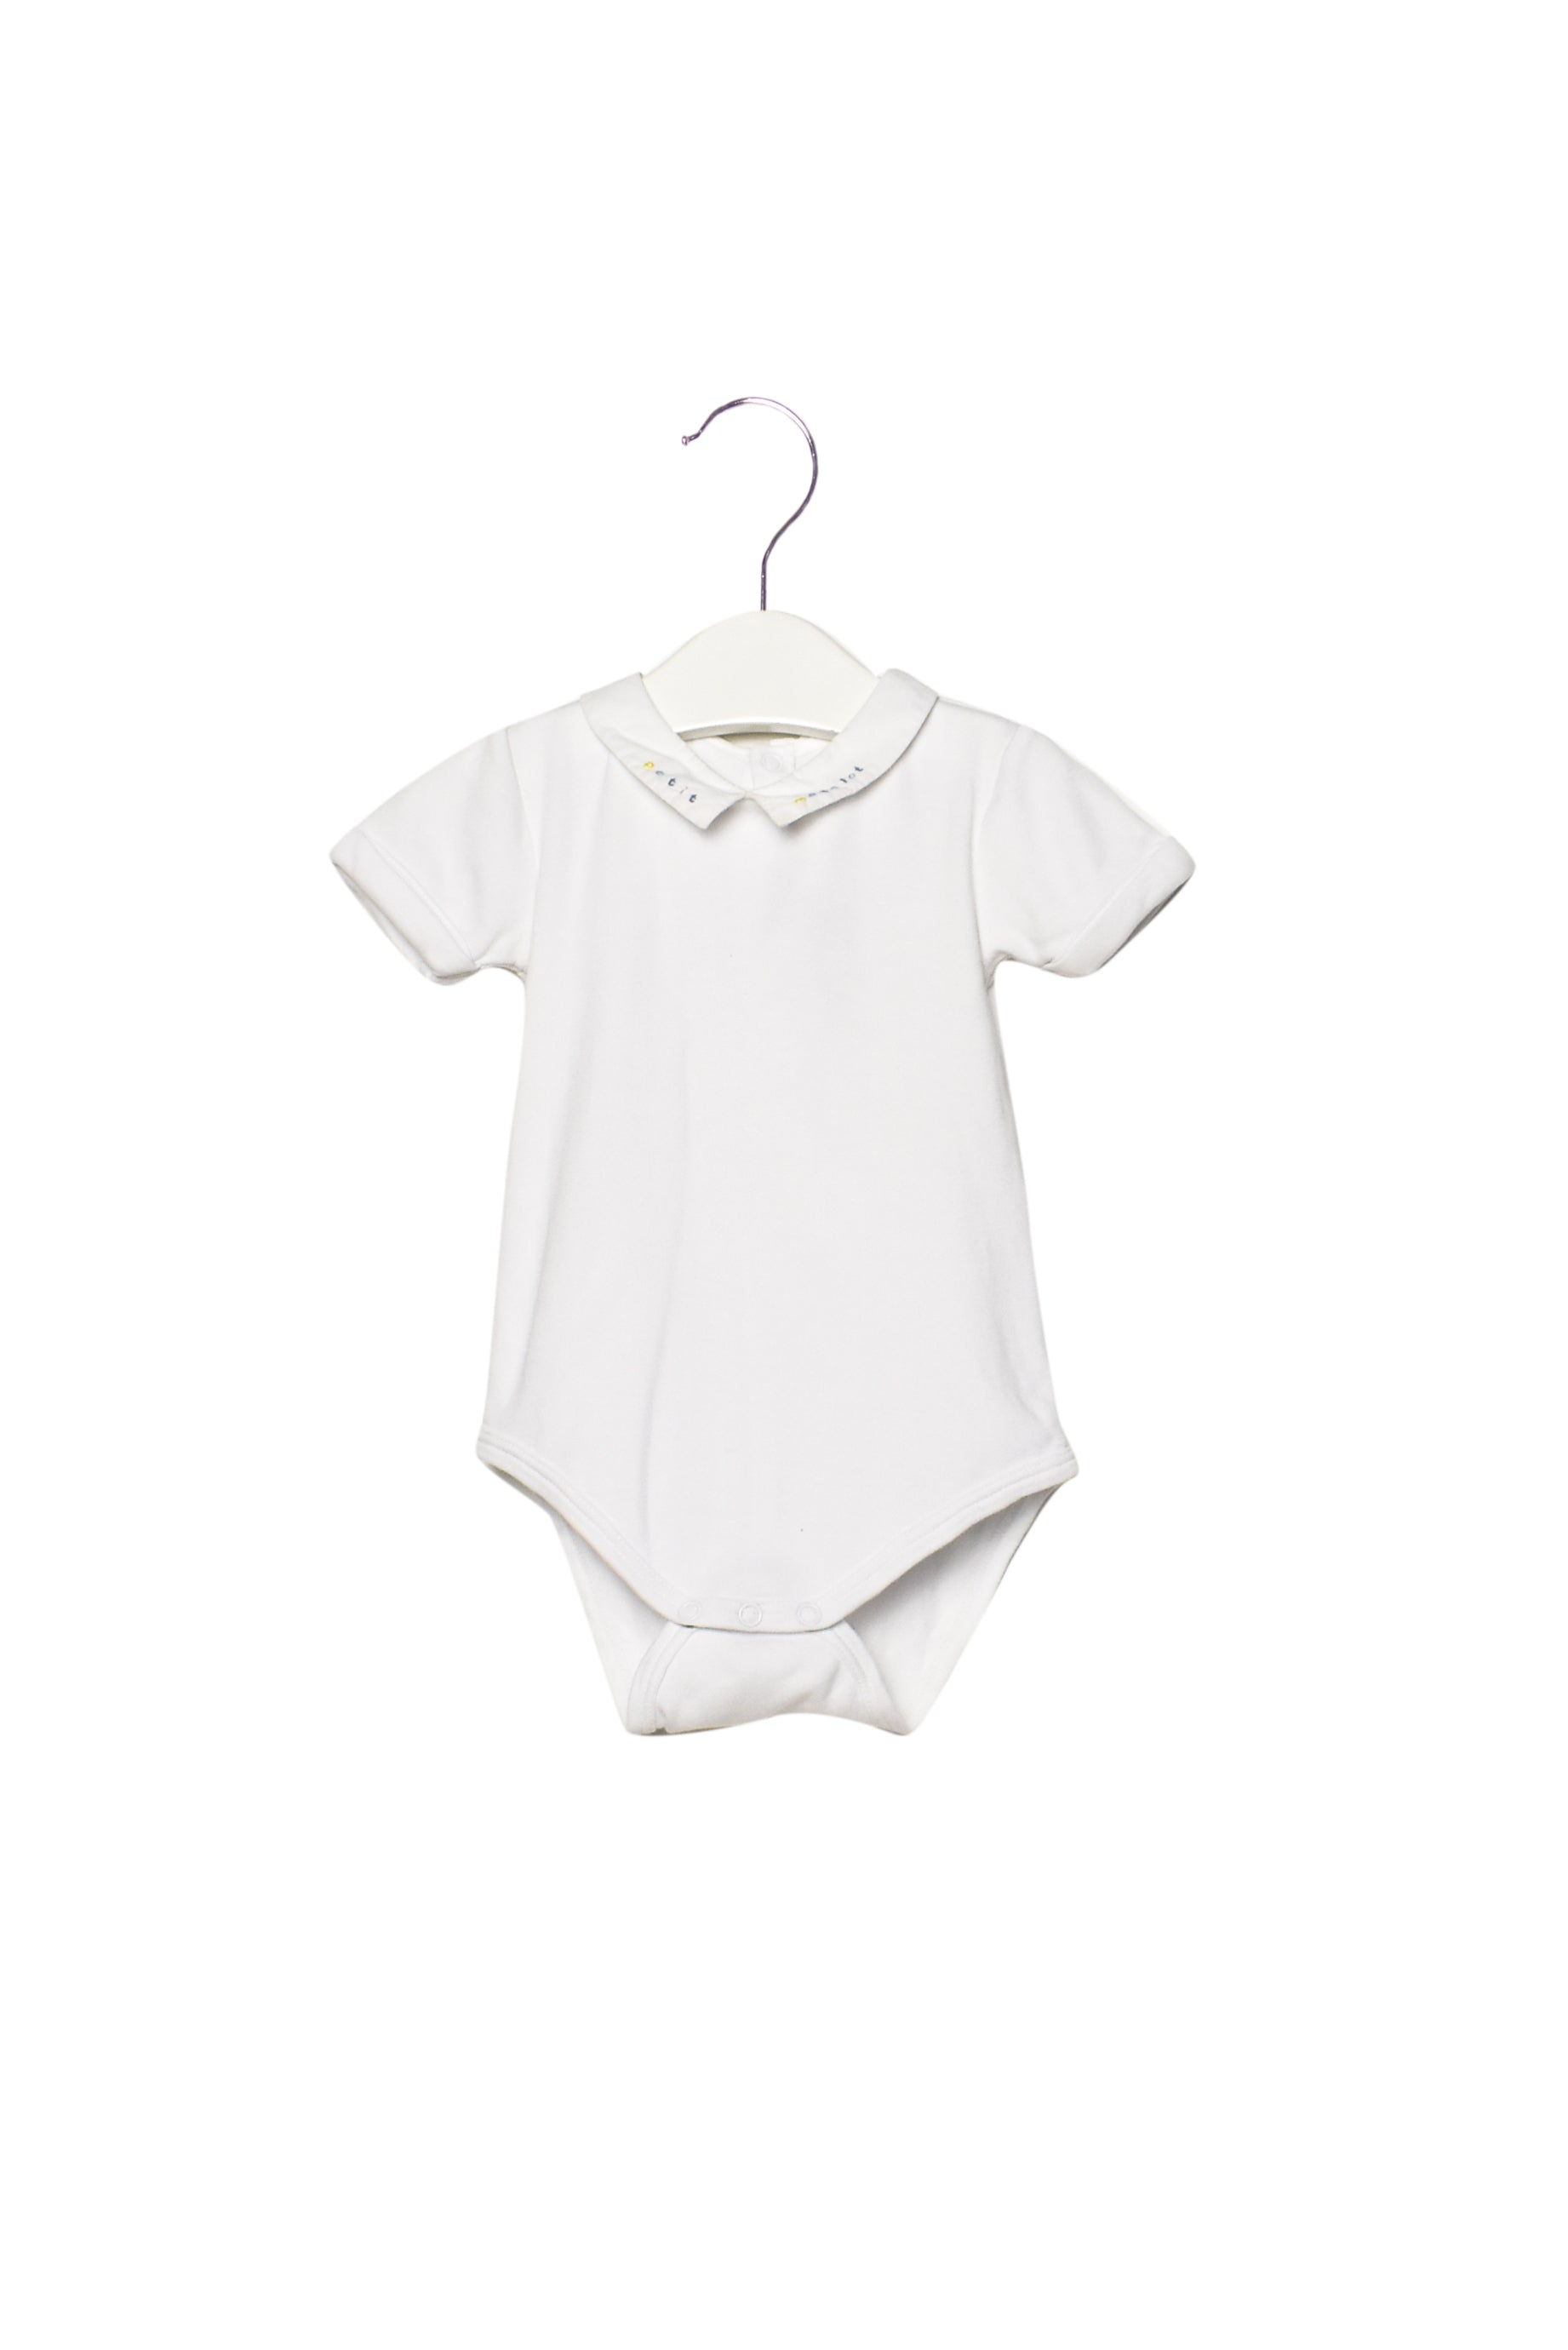 10011930 Jacadi Baby ~ Bodysuit 12M at Retykle